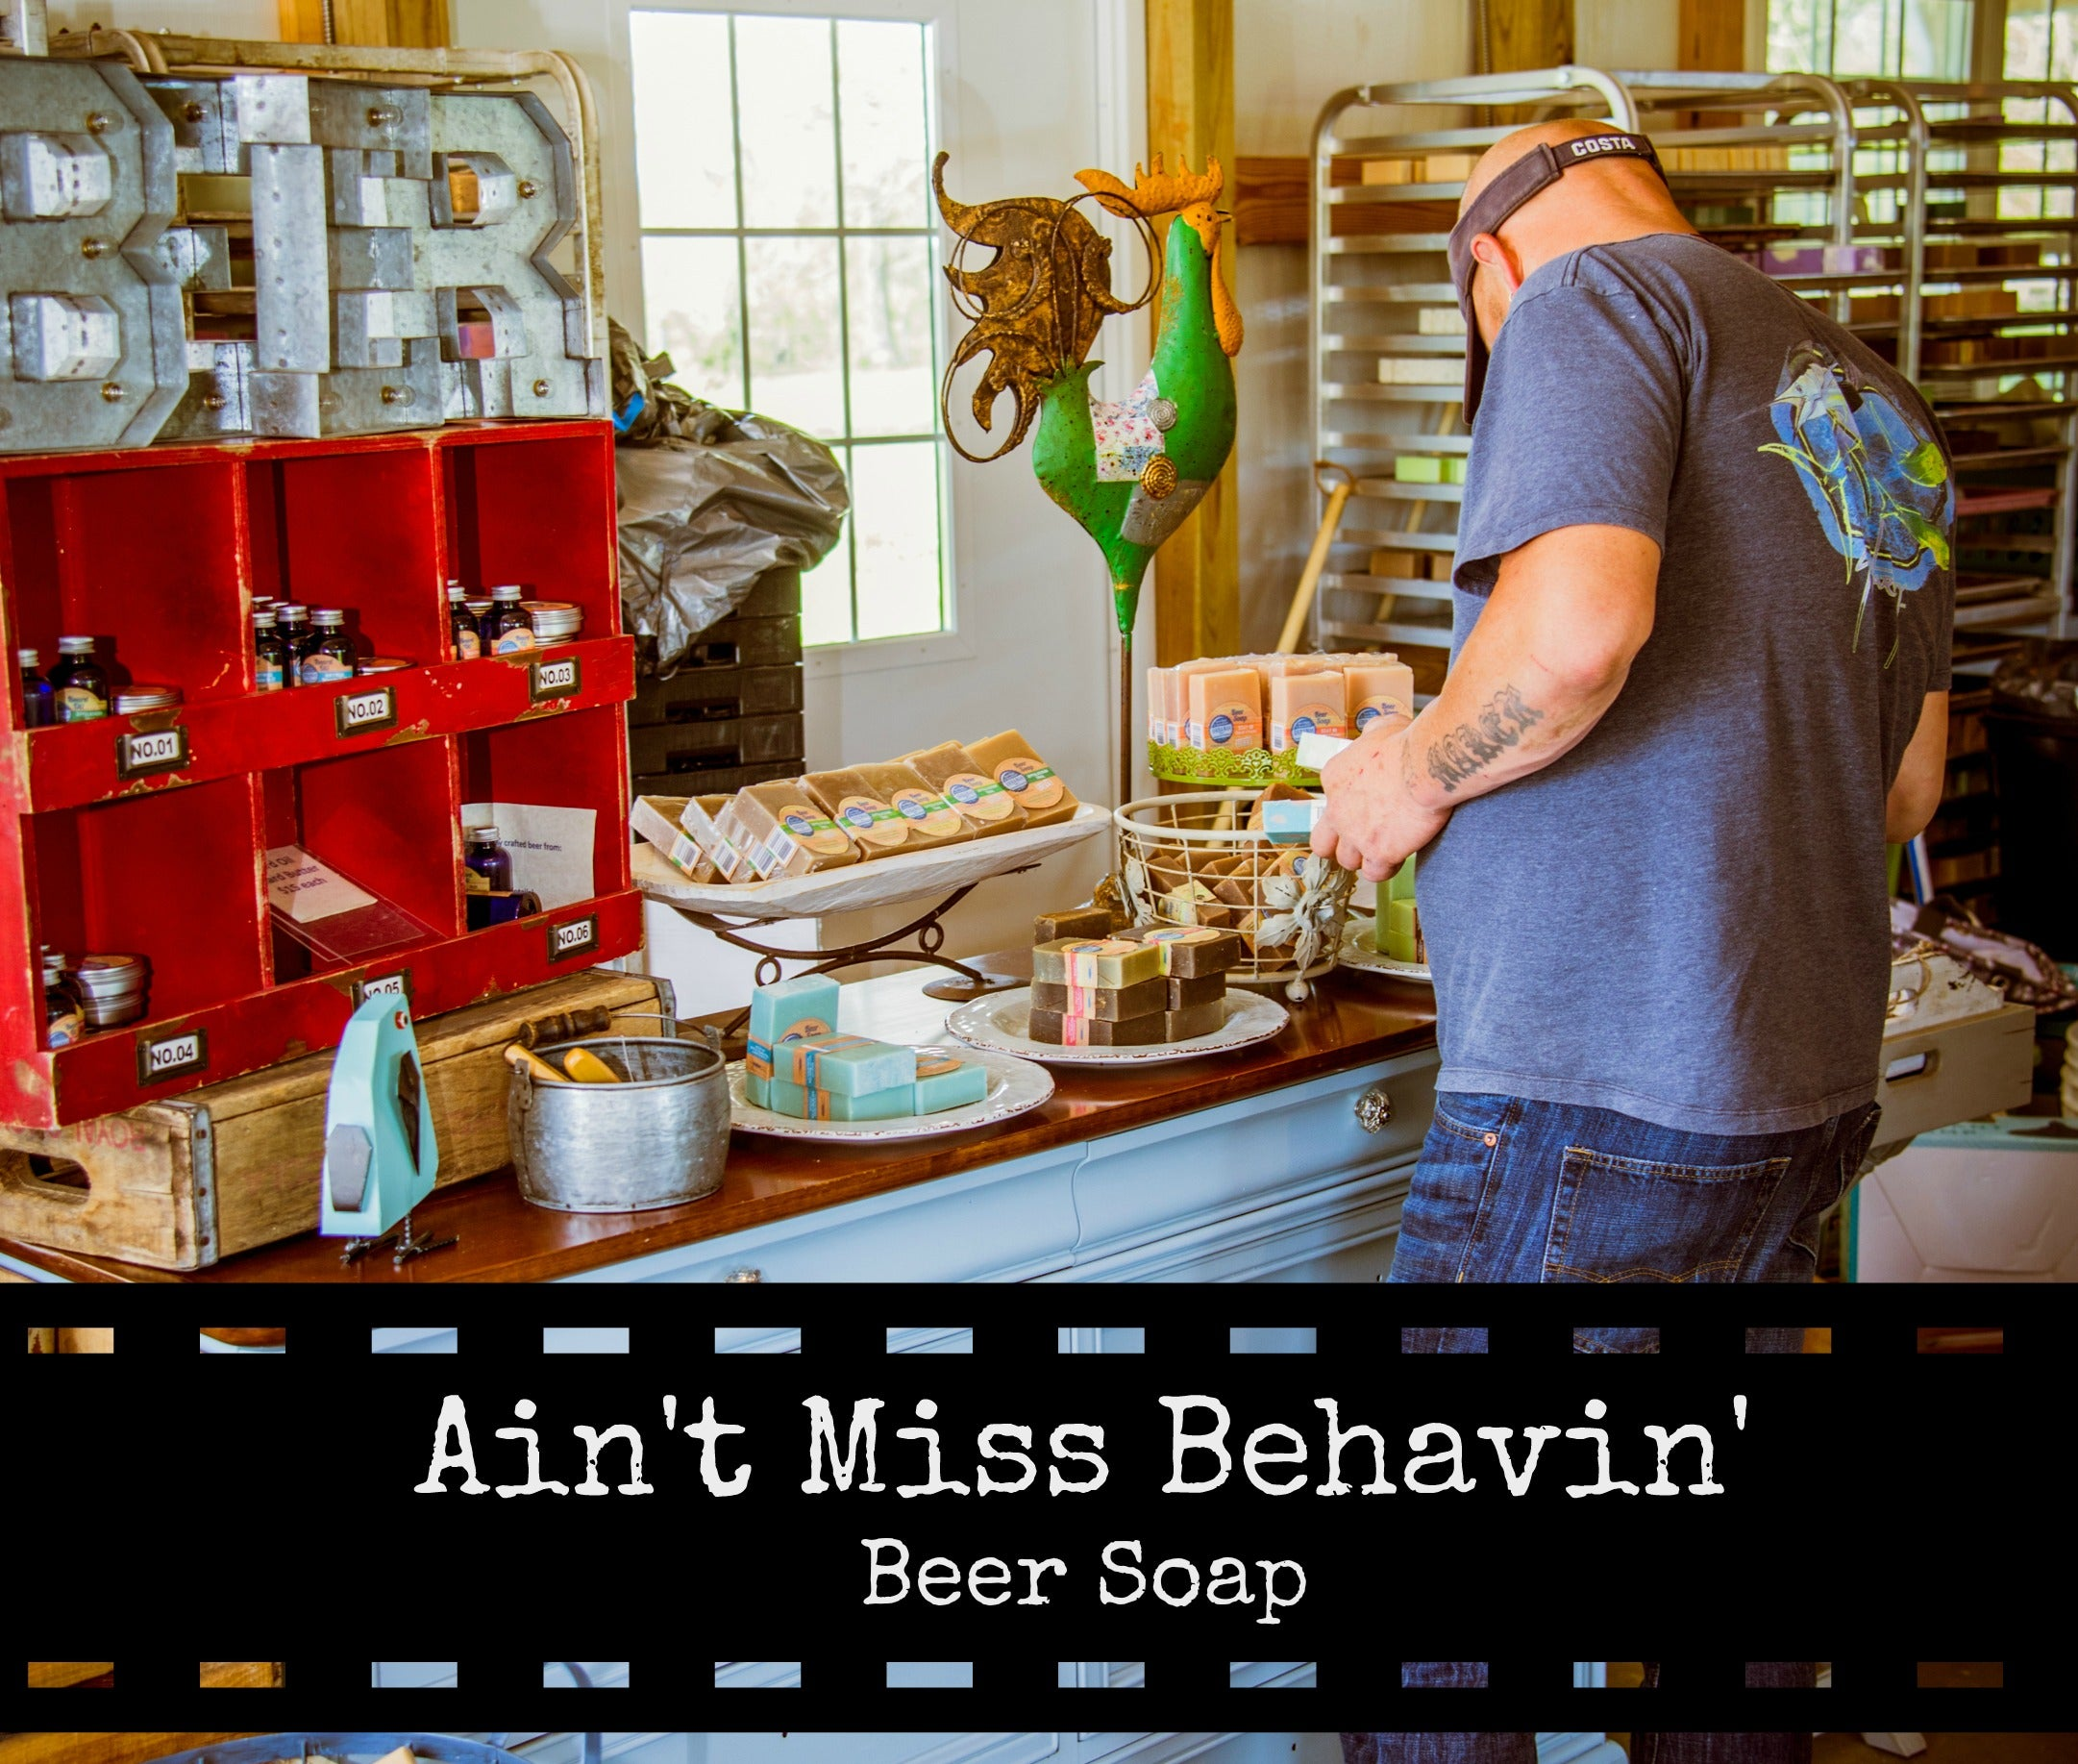 Ain't Miss Behavin' Handcrafted Beer Soap